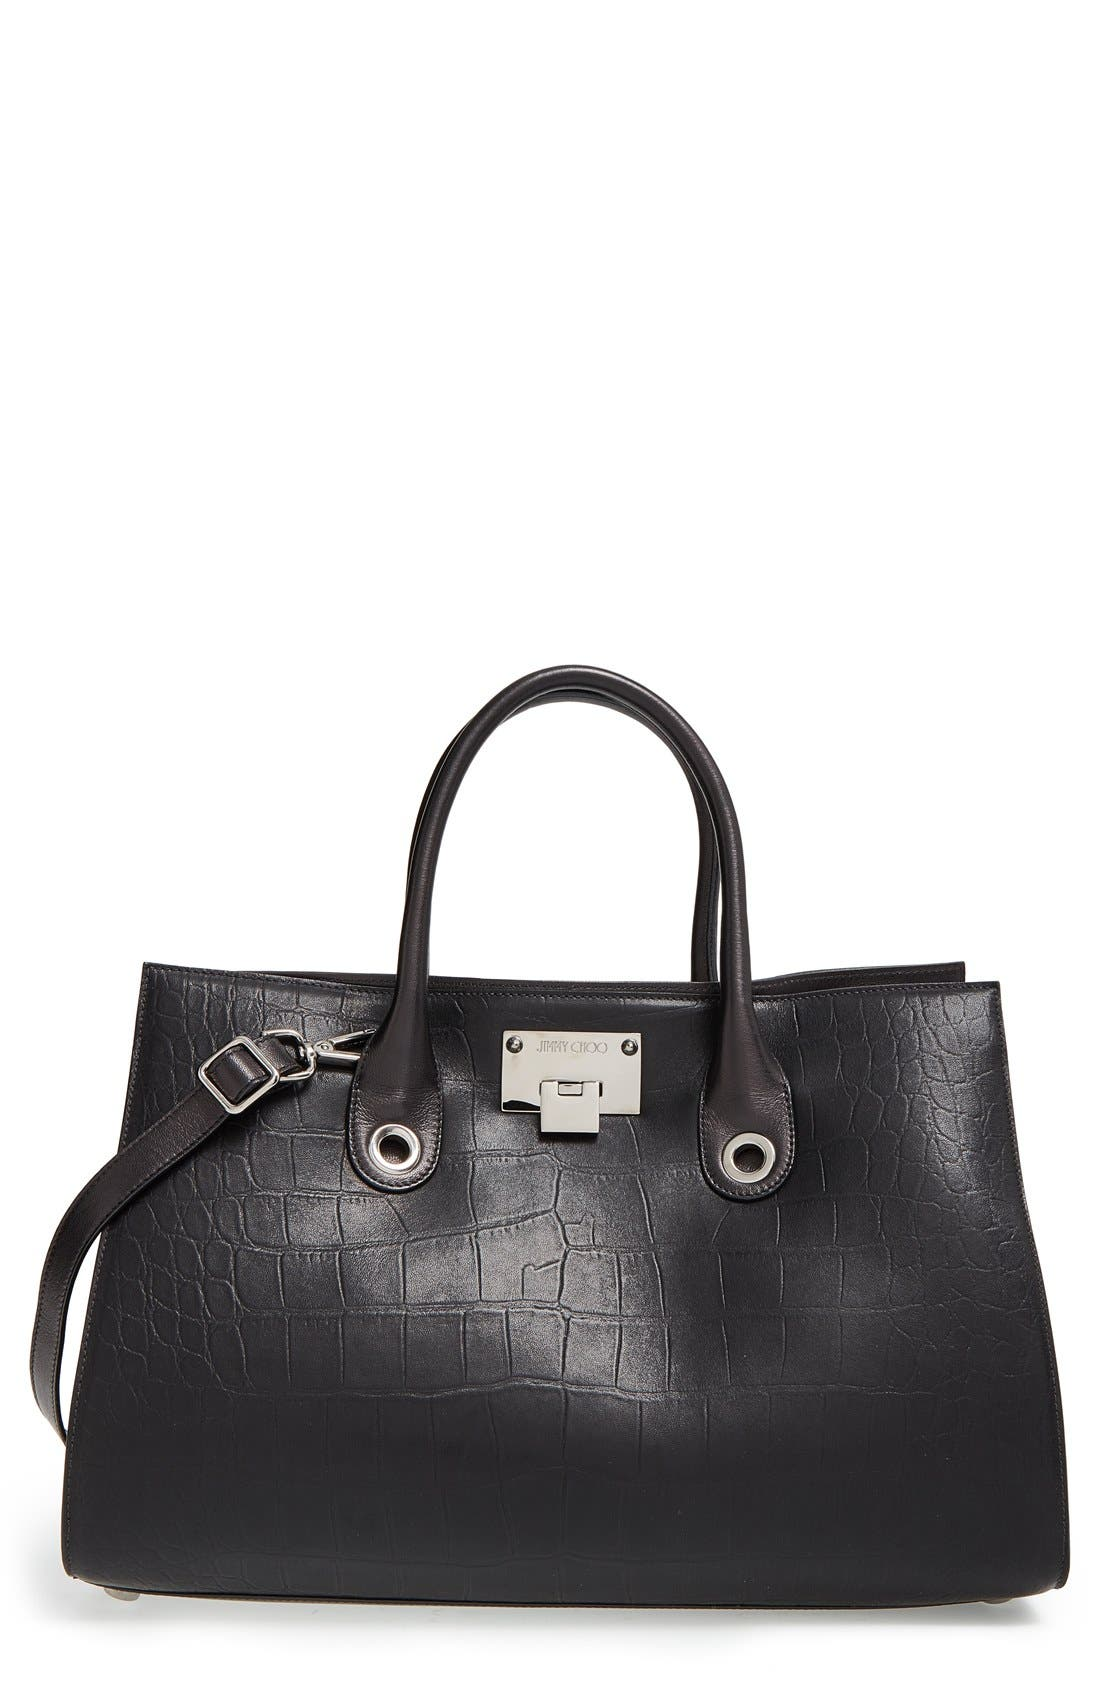 JIMMY CHOO 'Riley' Leather Tote